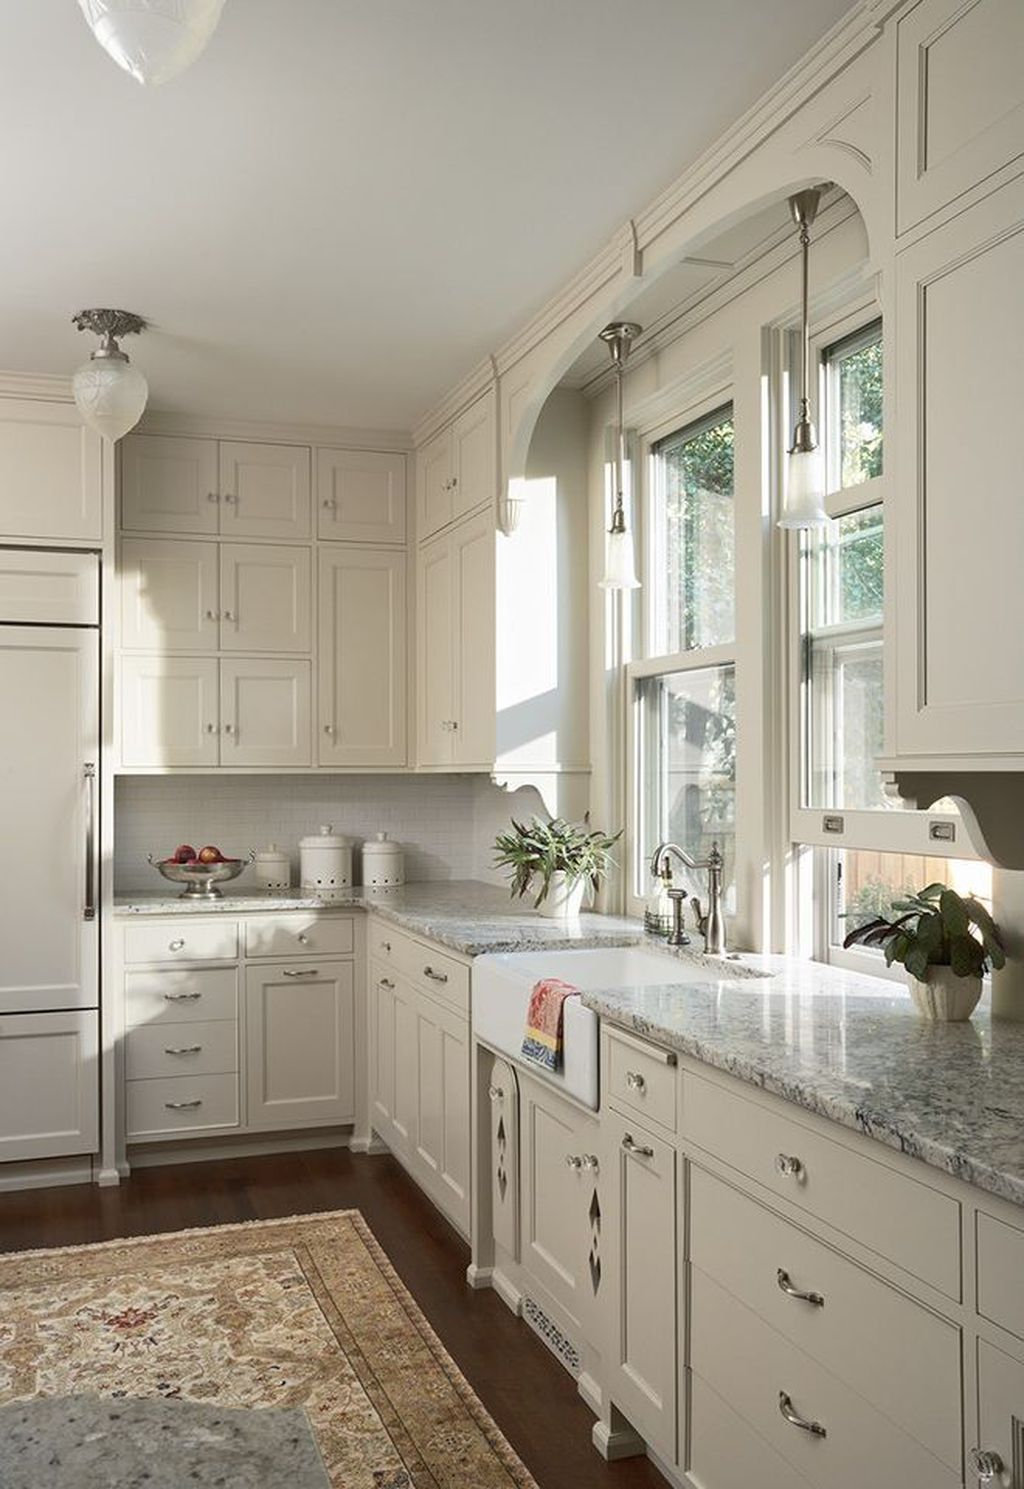 Inspiring traditional victorian kitchen remodel ideas 14 for Victorian kitchen ideas